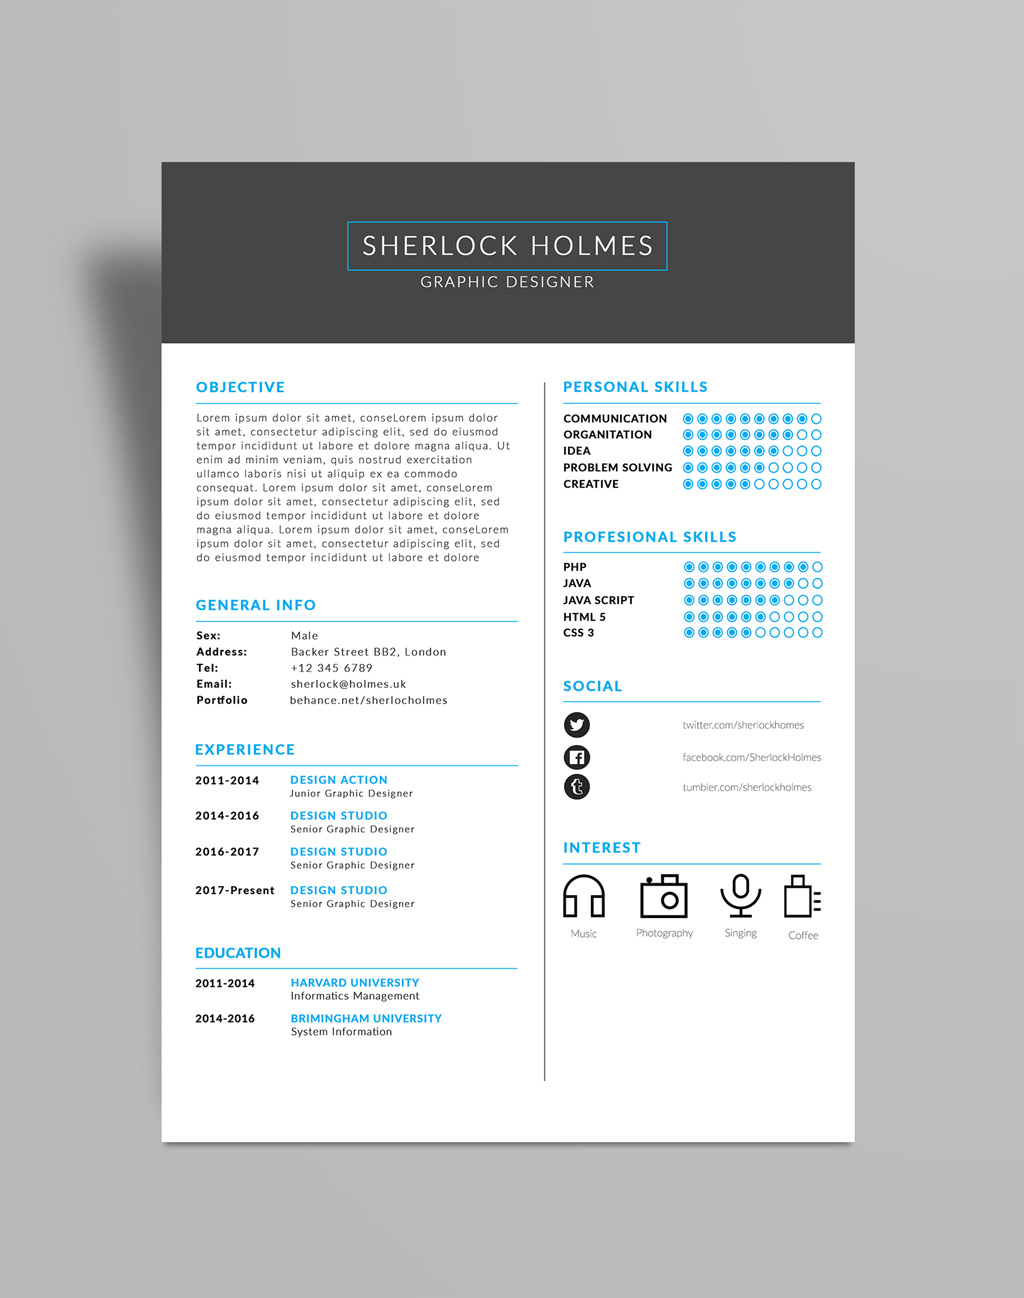 Free Multipurpose Resume (CV) Design Template PSD File (3)